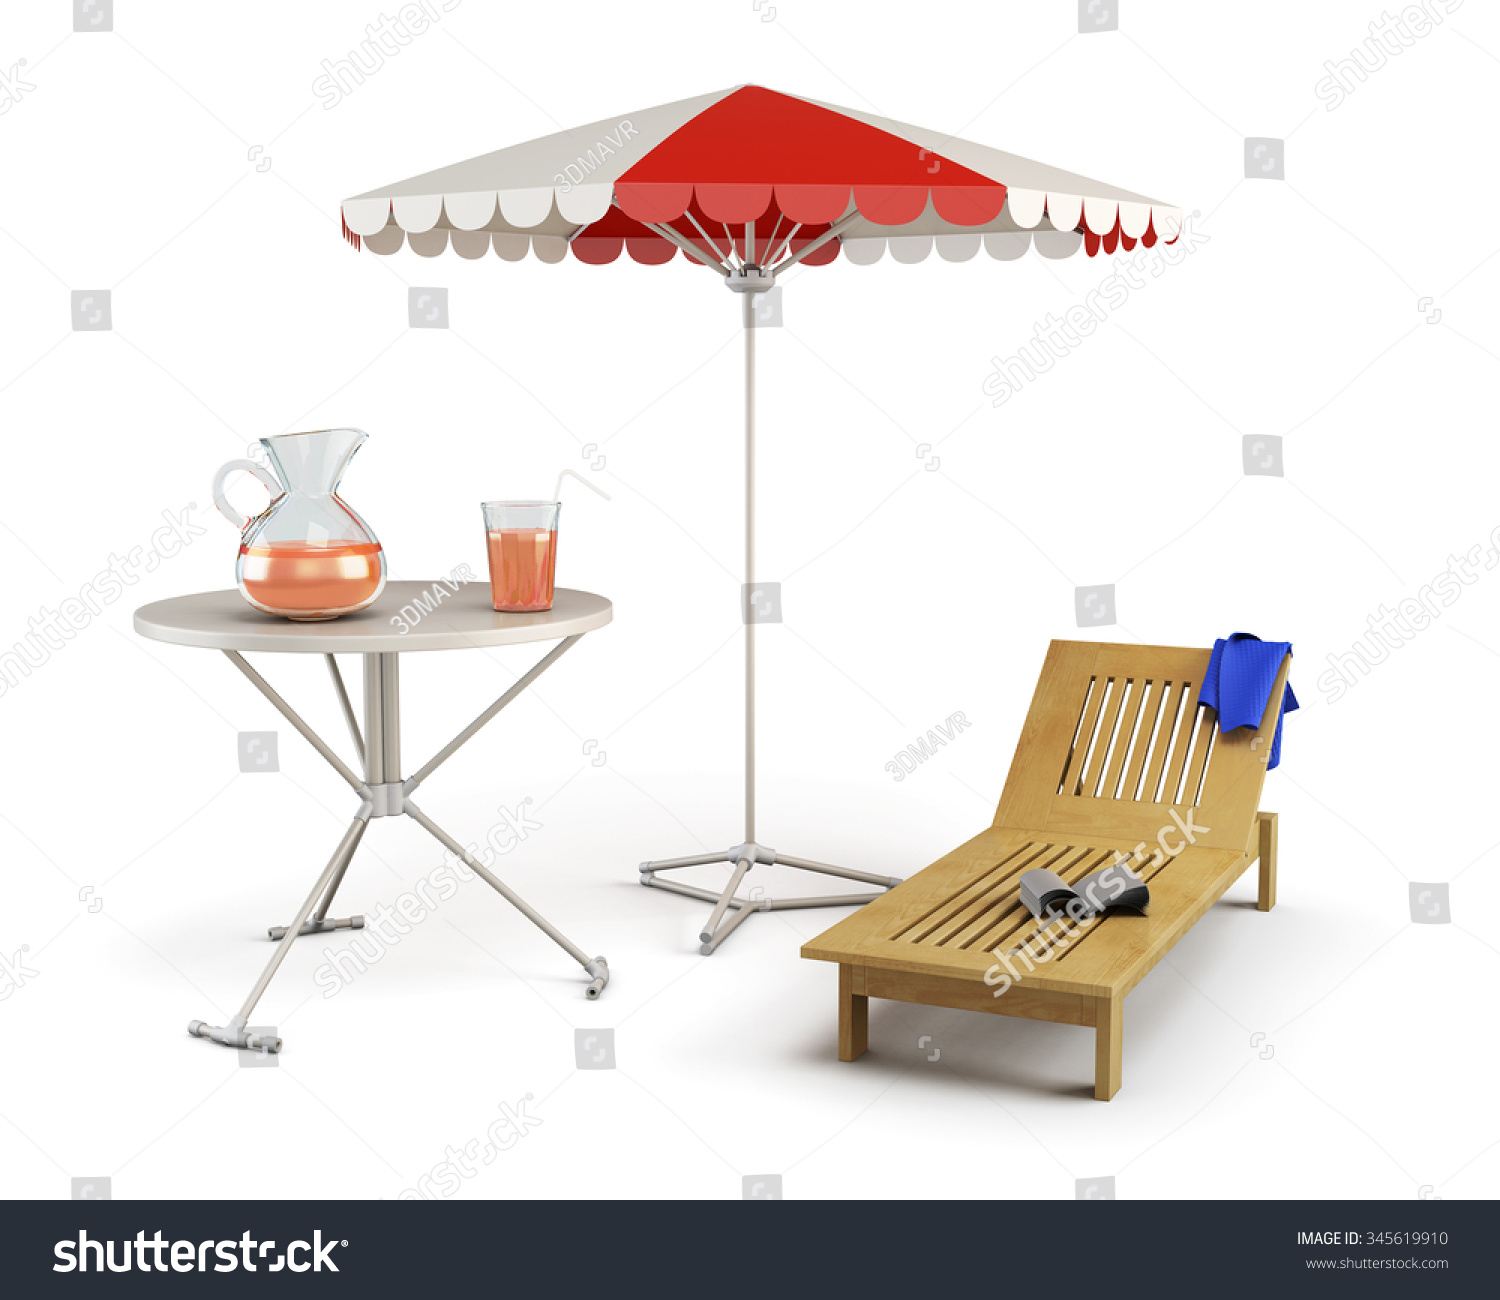 Table, Sun Lounger And Beach Umbrella   Place Of Rest On A White. 3d